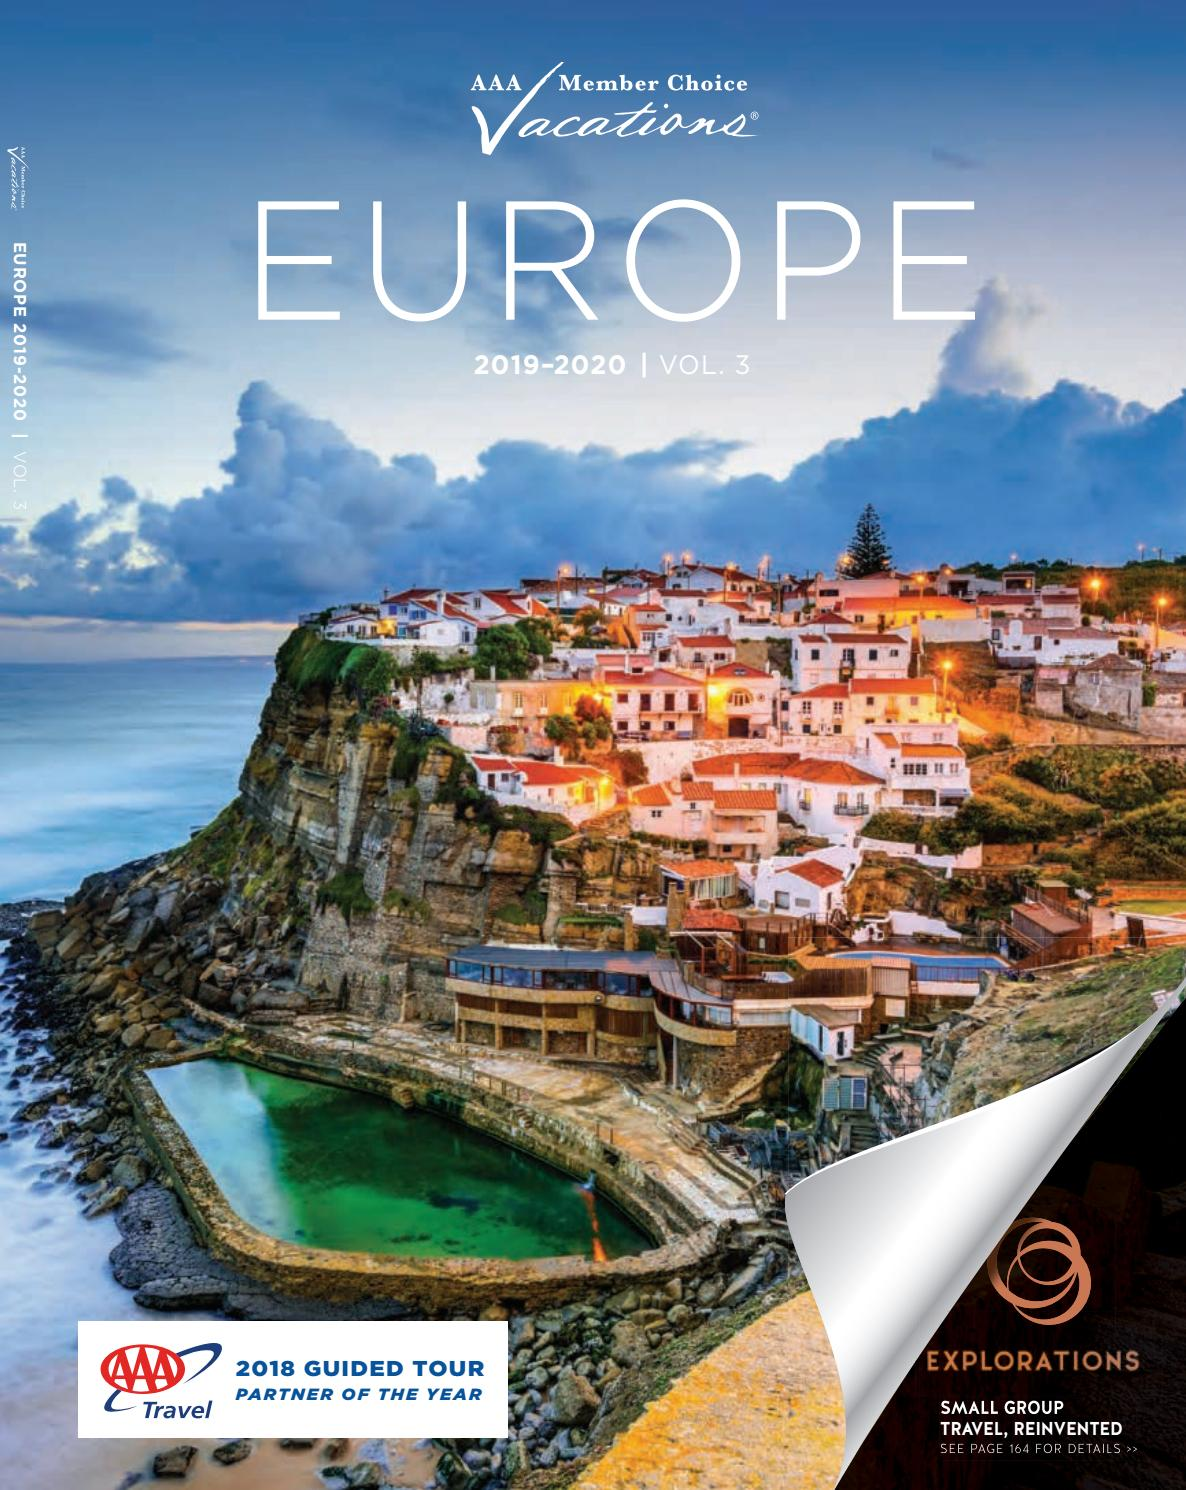 2019 2020 Vol 3 Europe AAA Agt Rtl by Collette - issuu